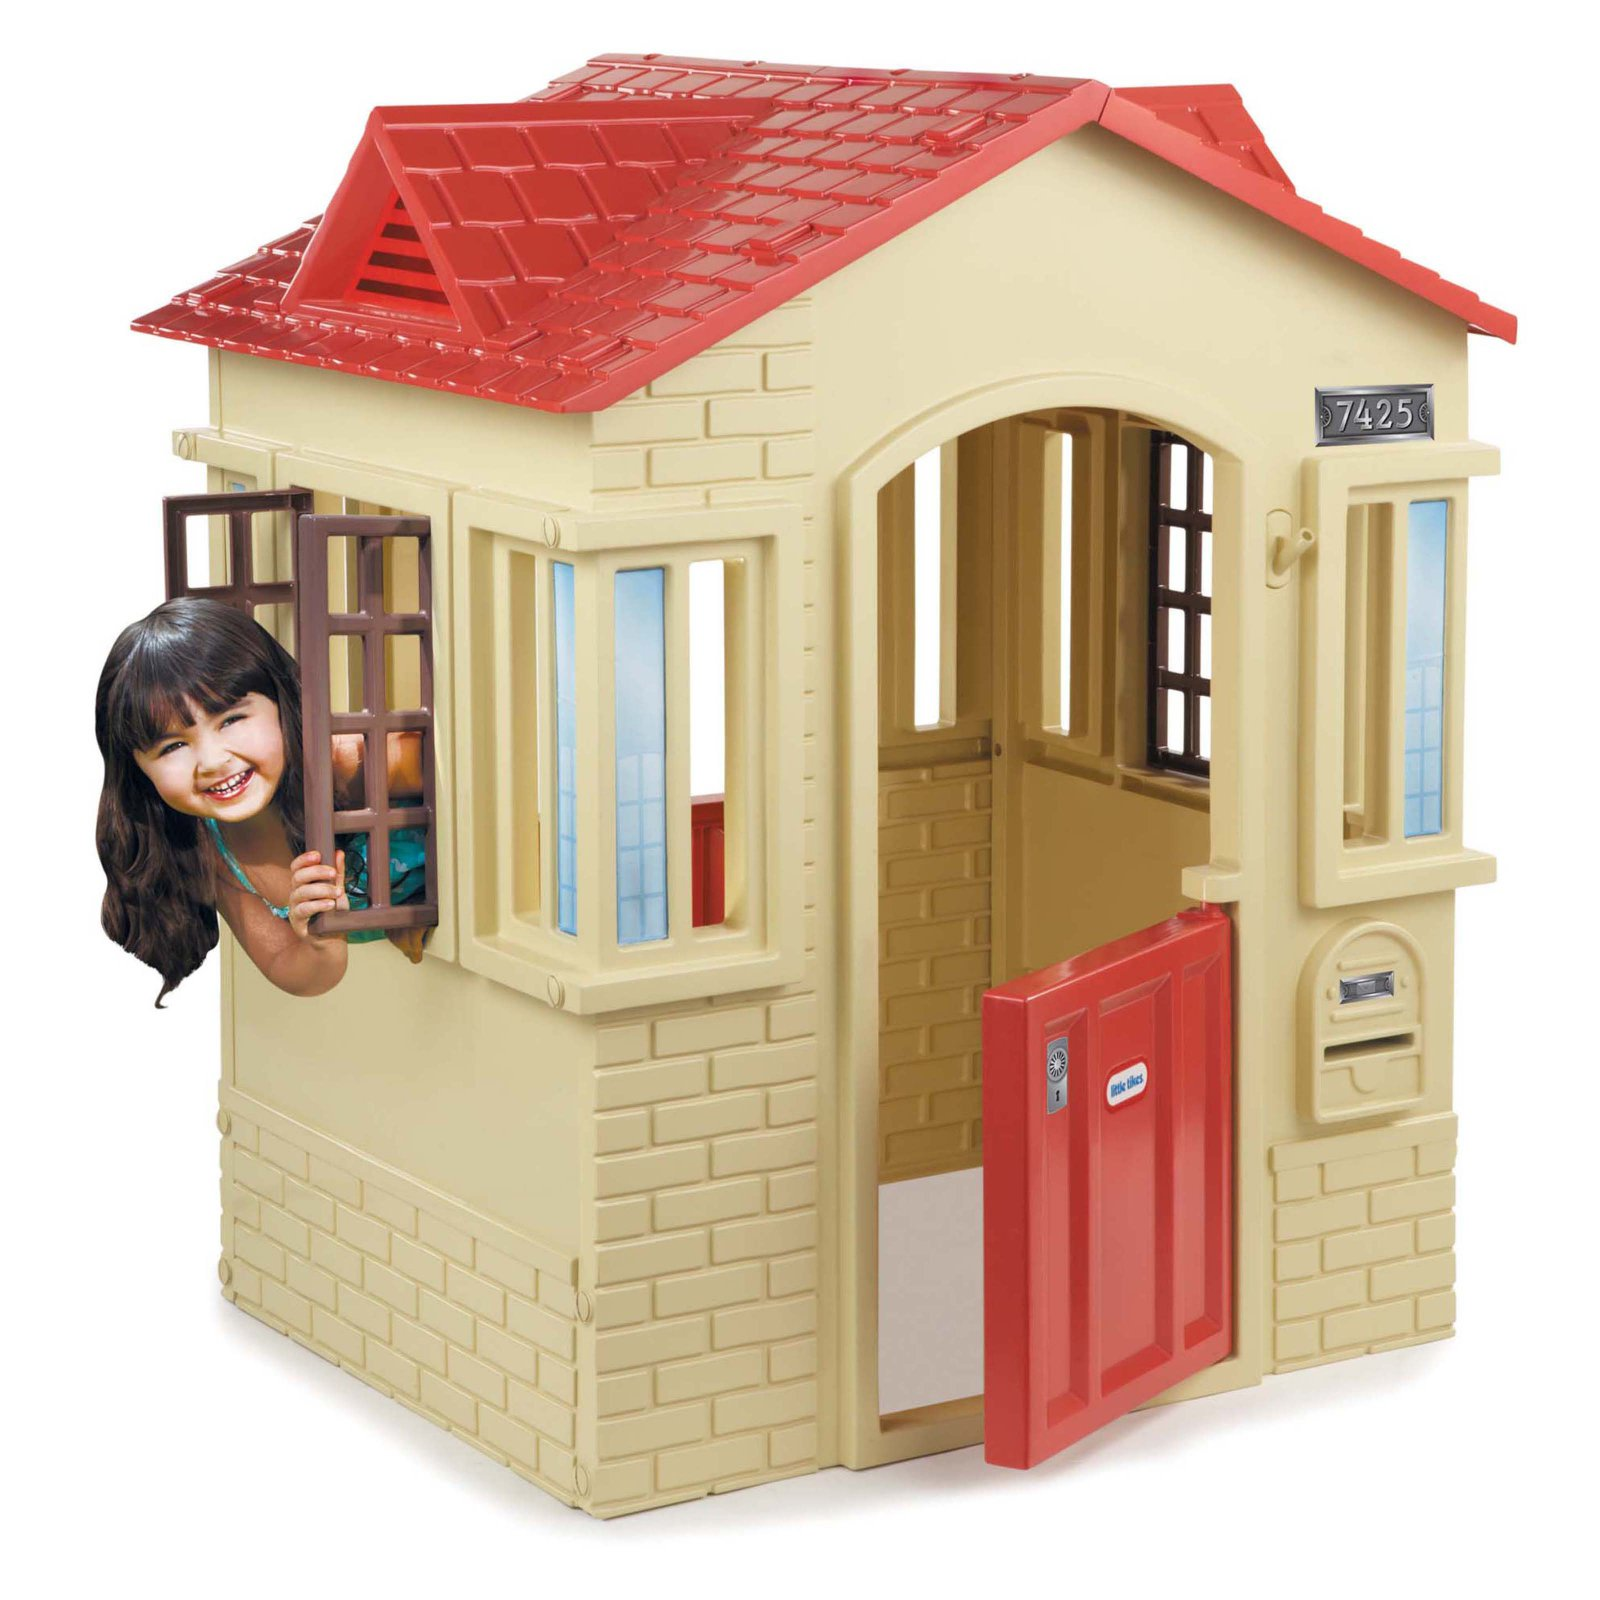 Little Tikes Cape Cottage Playhouse, Tan by MGA Entertainment